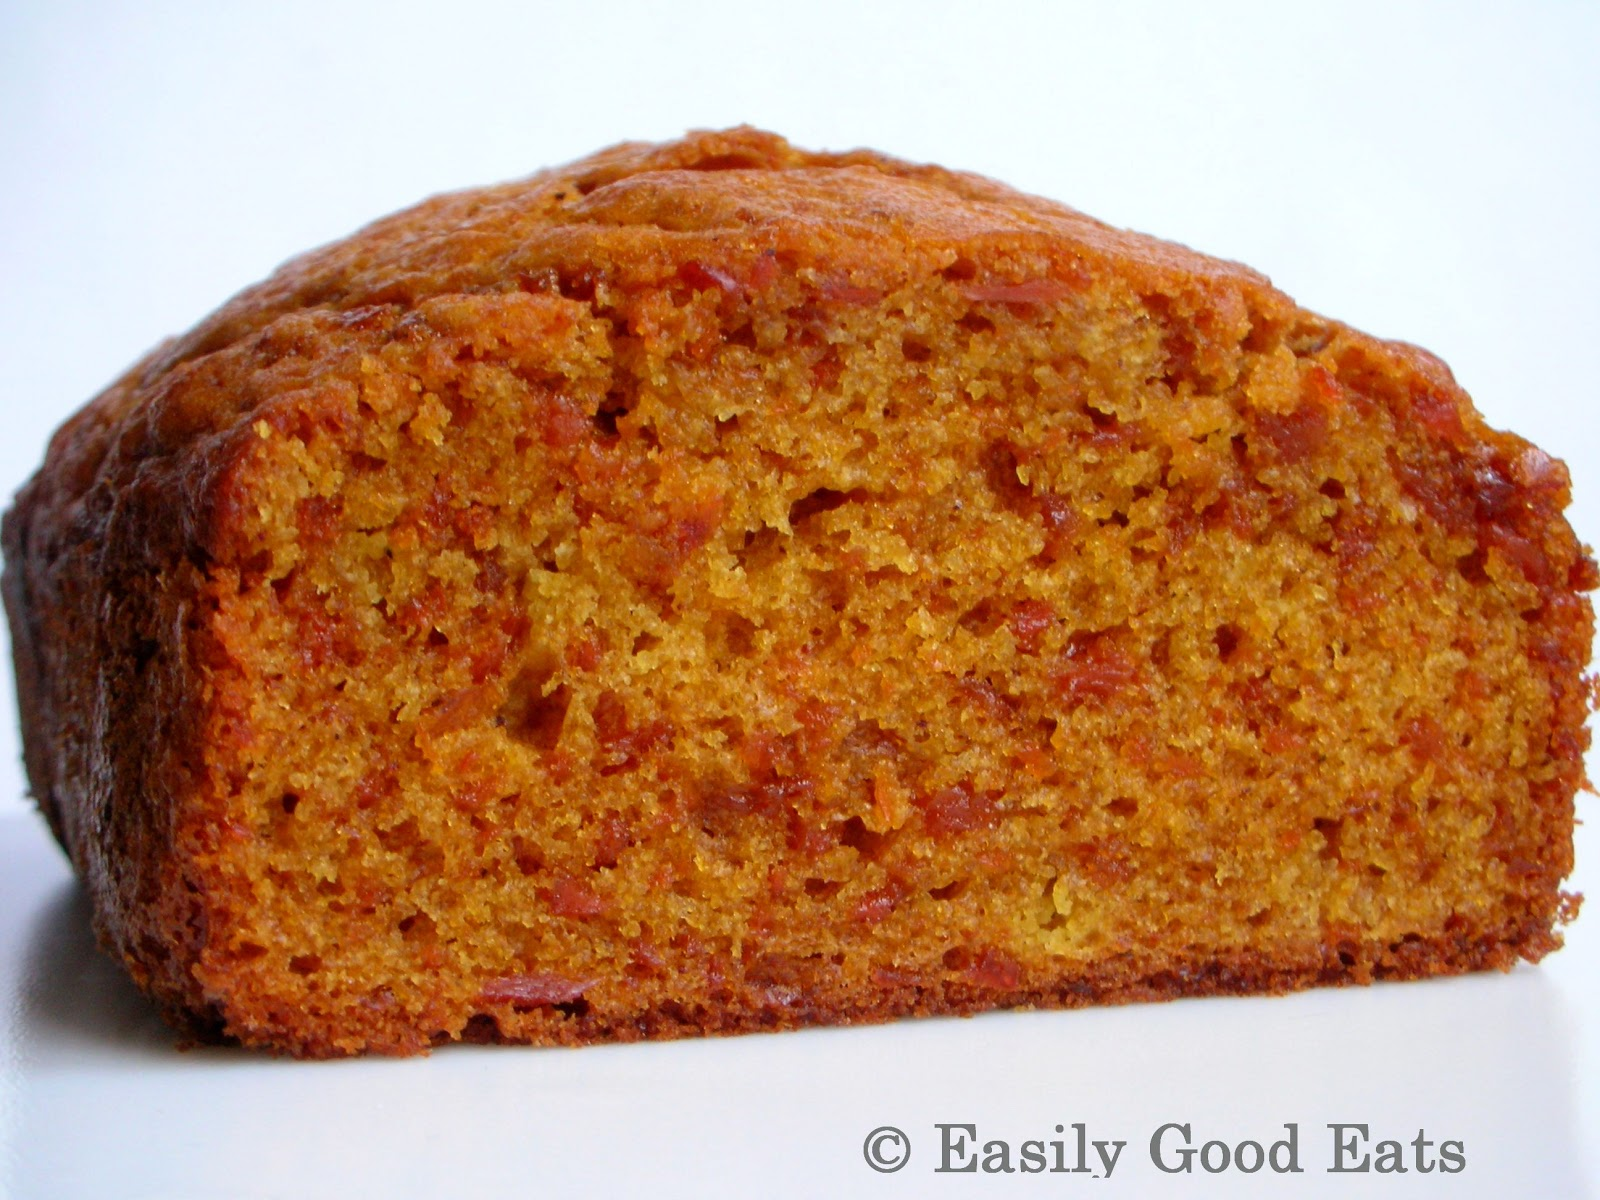 Carrot Cake Recipe With Brandy